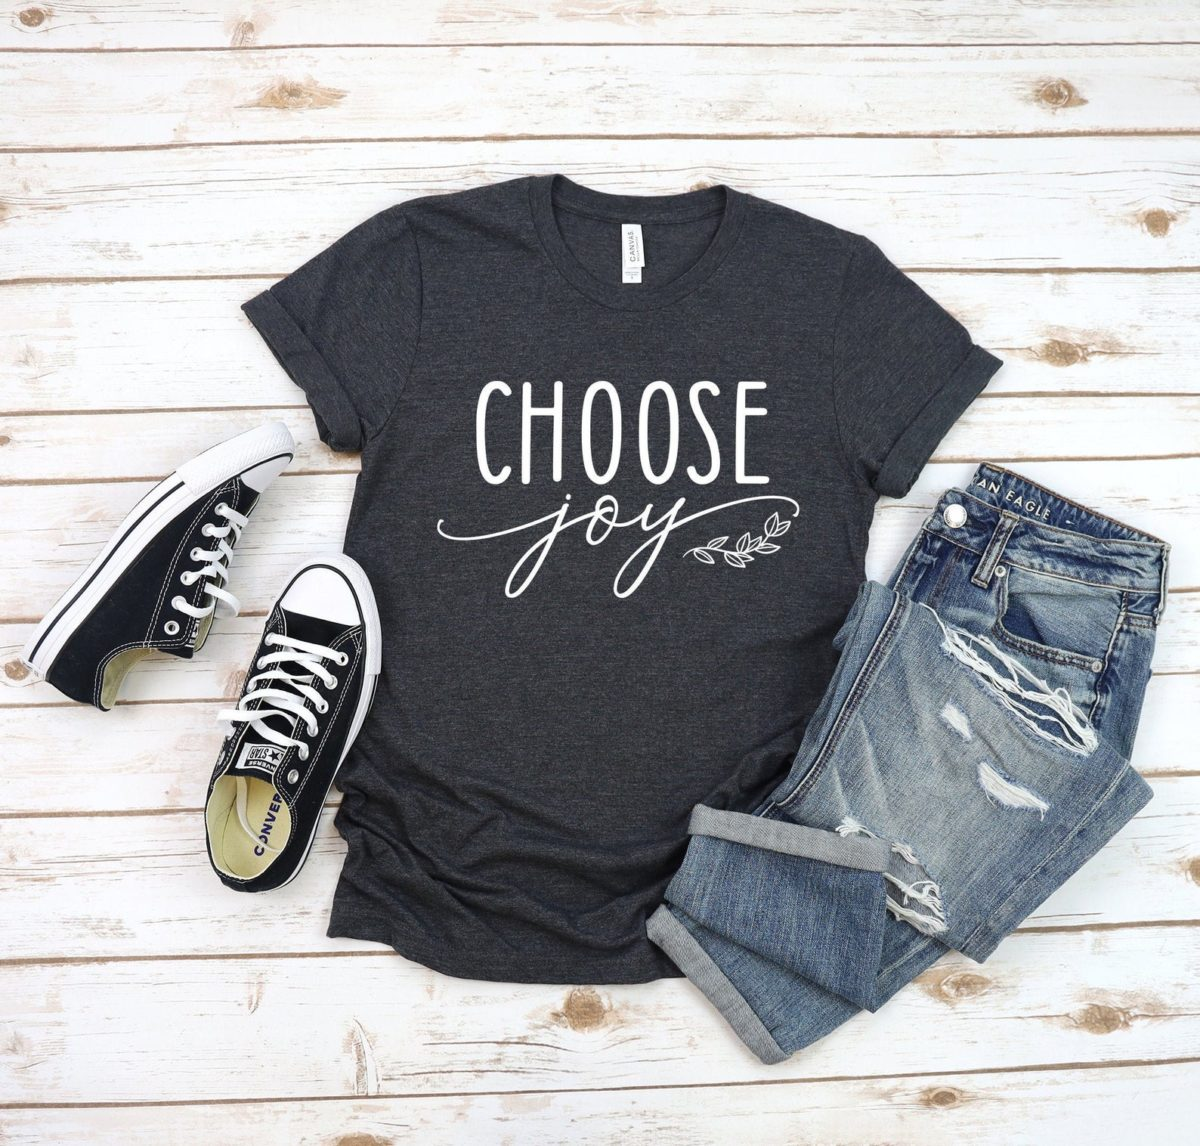 26 awesome etsy t-shirts that send a positive message and make great gifts | parenting questions | mamas uncut il 1588xn.2978415265 m7a4